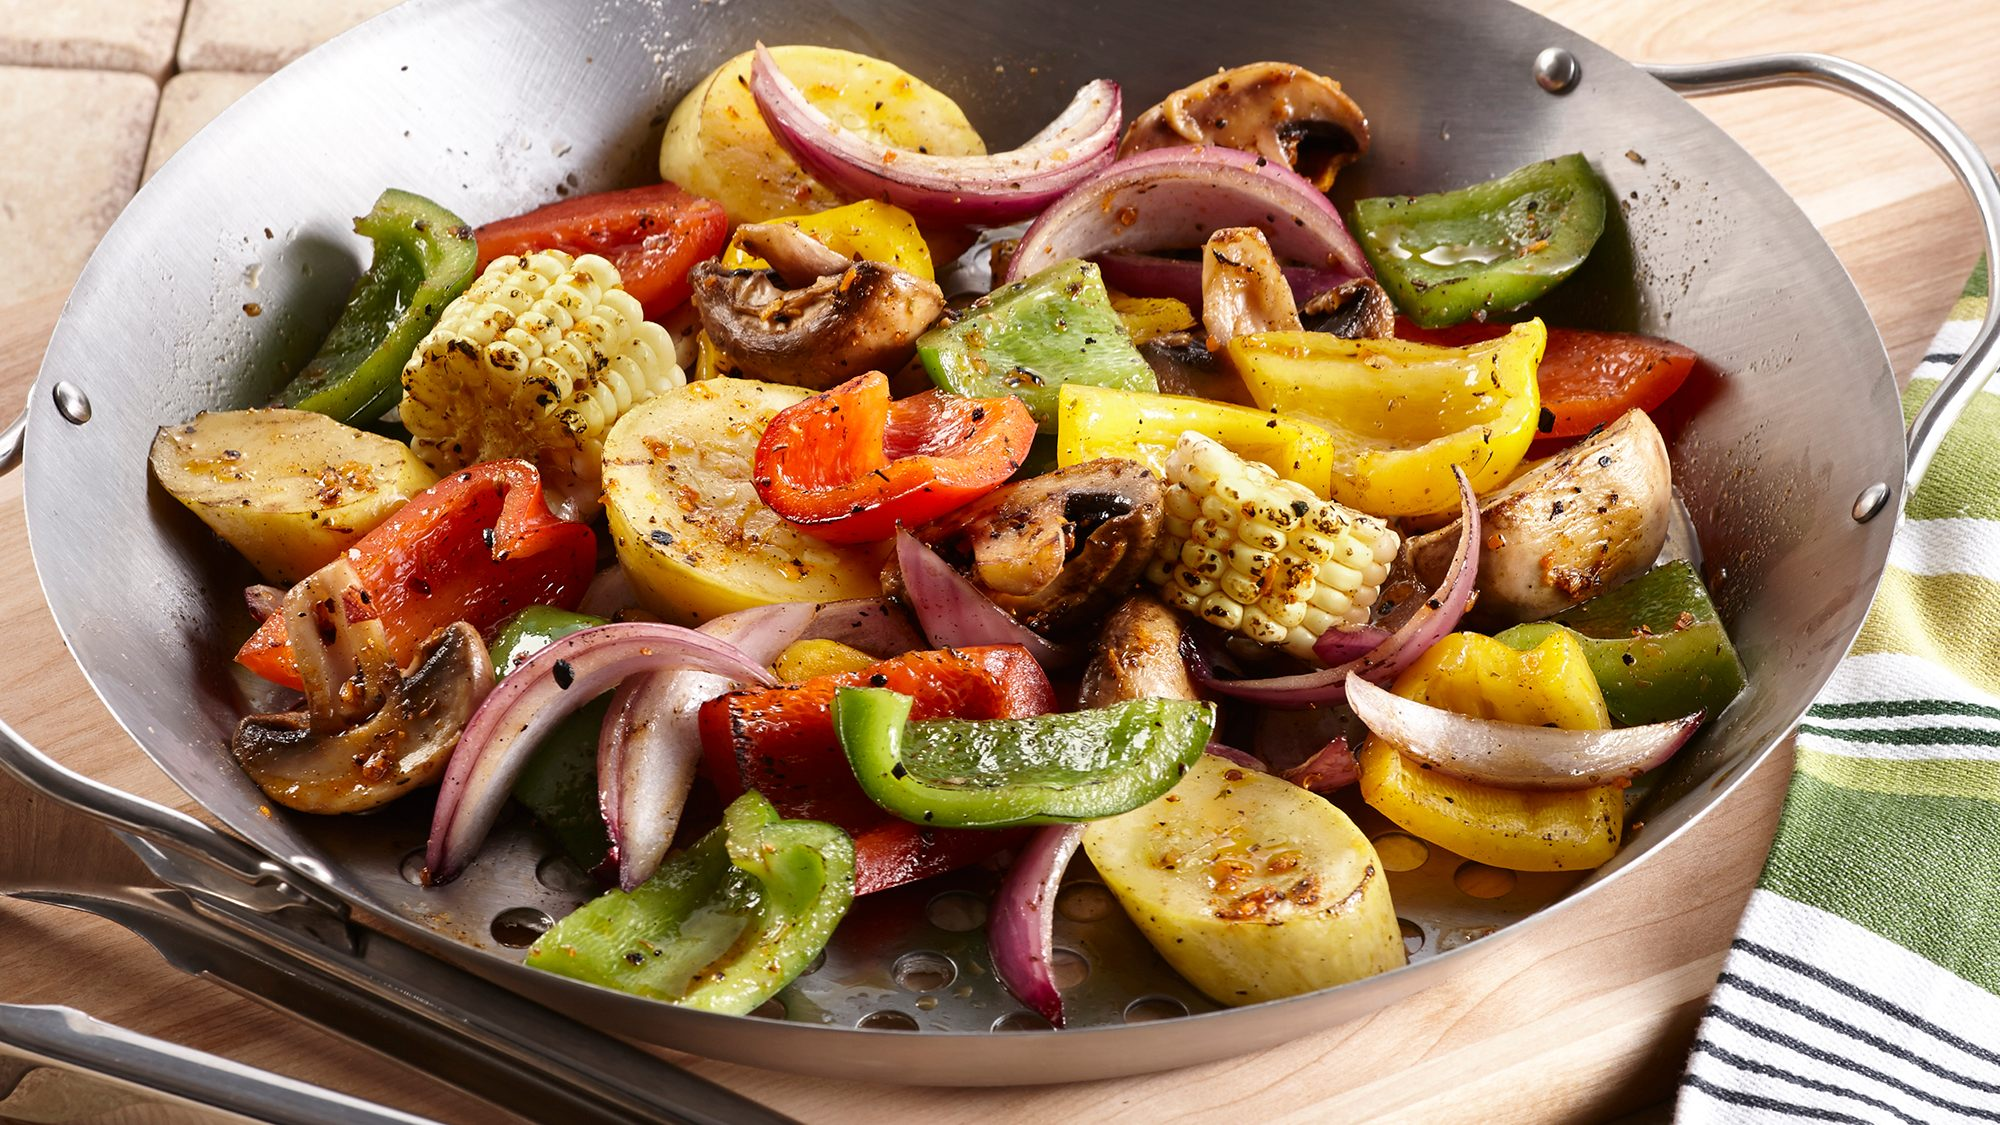 McCormick GrillMates Roasted Garlic Grilled Vegetables